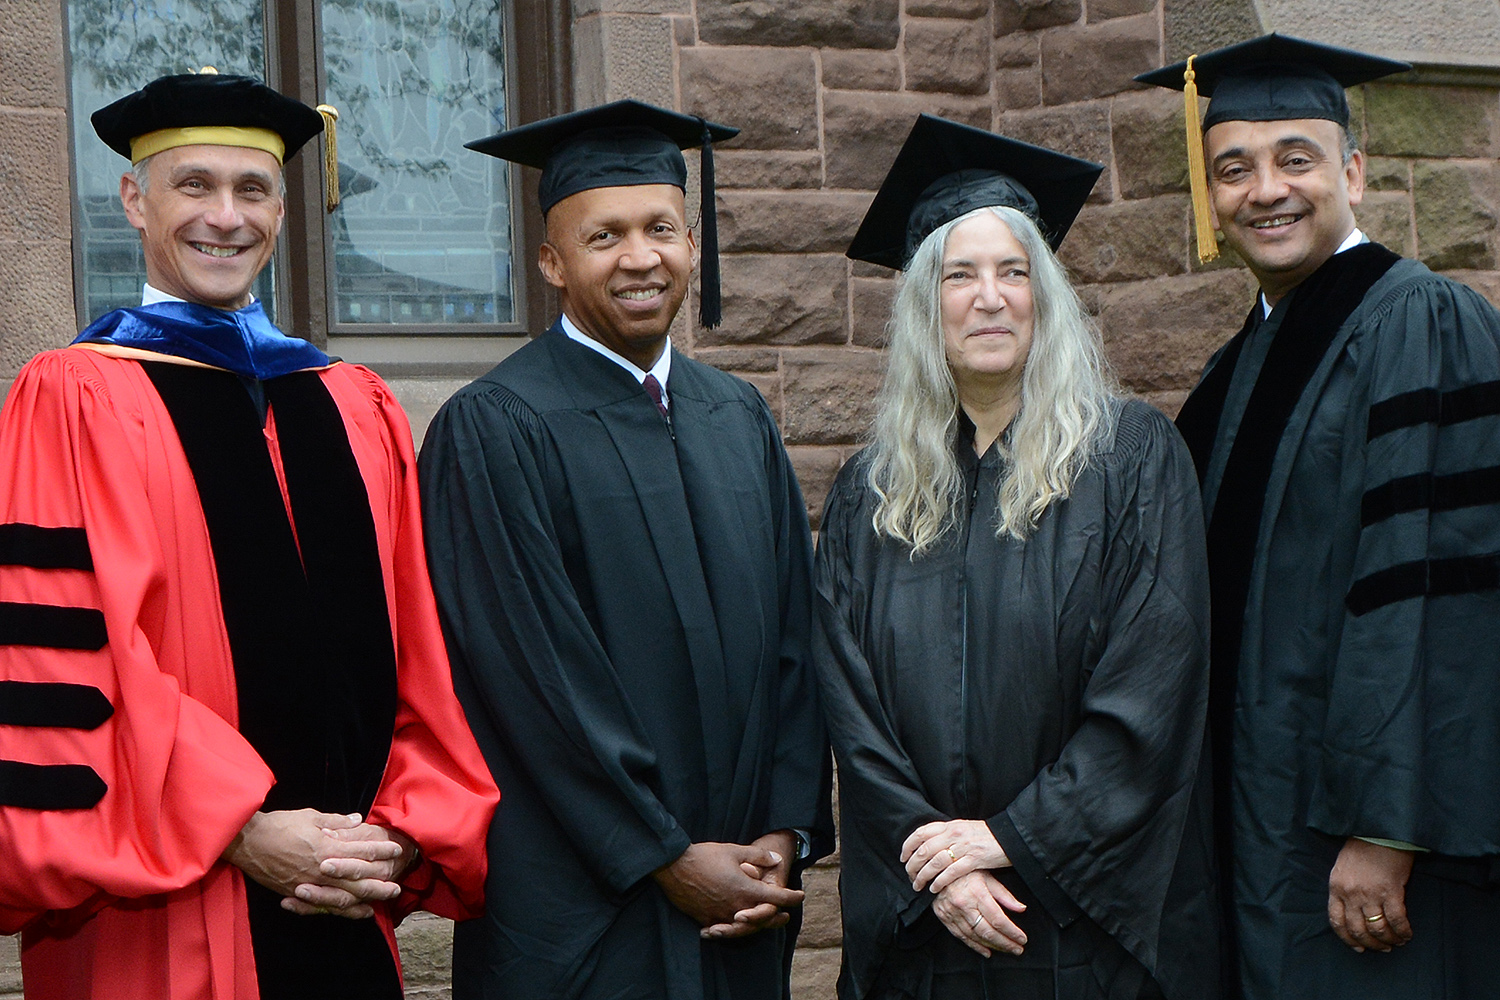 From left, Michael Roth, Bryan Stevenson, Patti Smith, Anthony Appiah, Joshua Boger. (Photo by John Van Vlack)